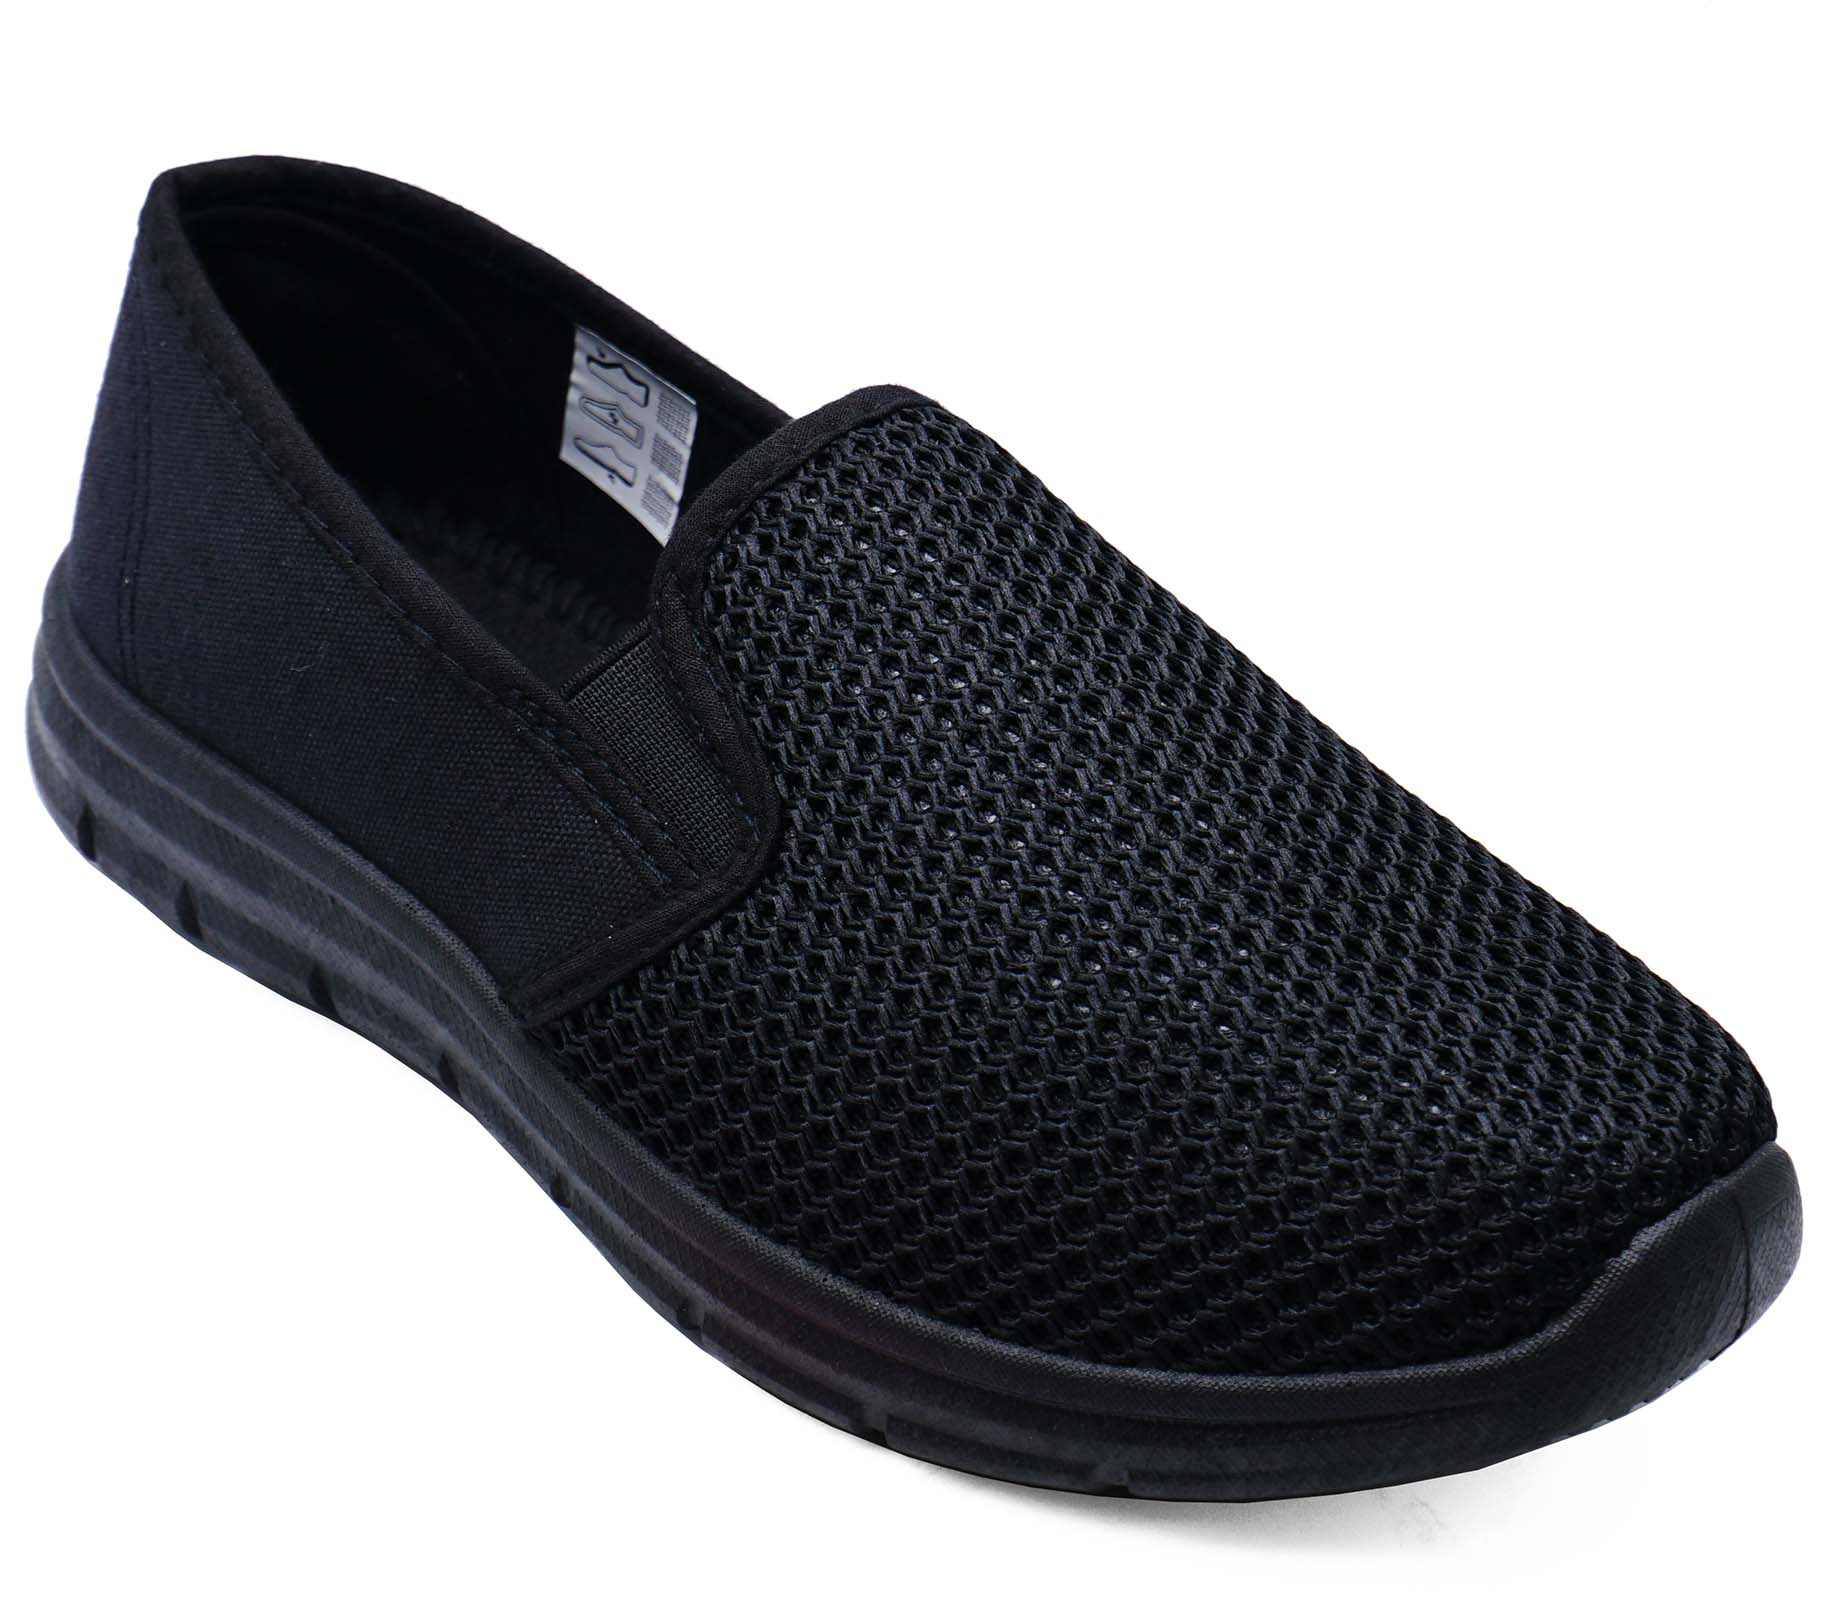 thumbnail 7 - LADIES-BLACK-SLIP-ON-COMFY-MEMORY-FOAM-TRAINER-PLIMSOLLS-CASUAL-PUMPS-SHOES-3-9